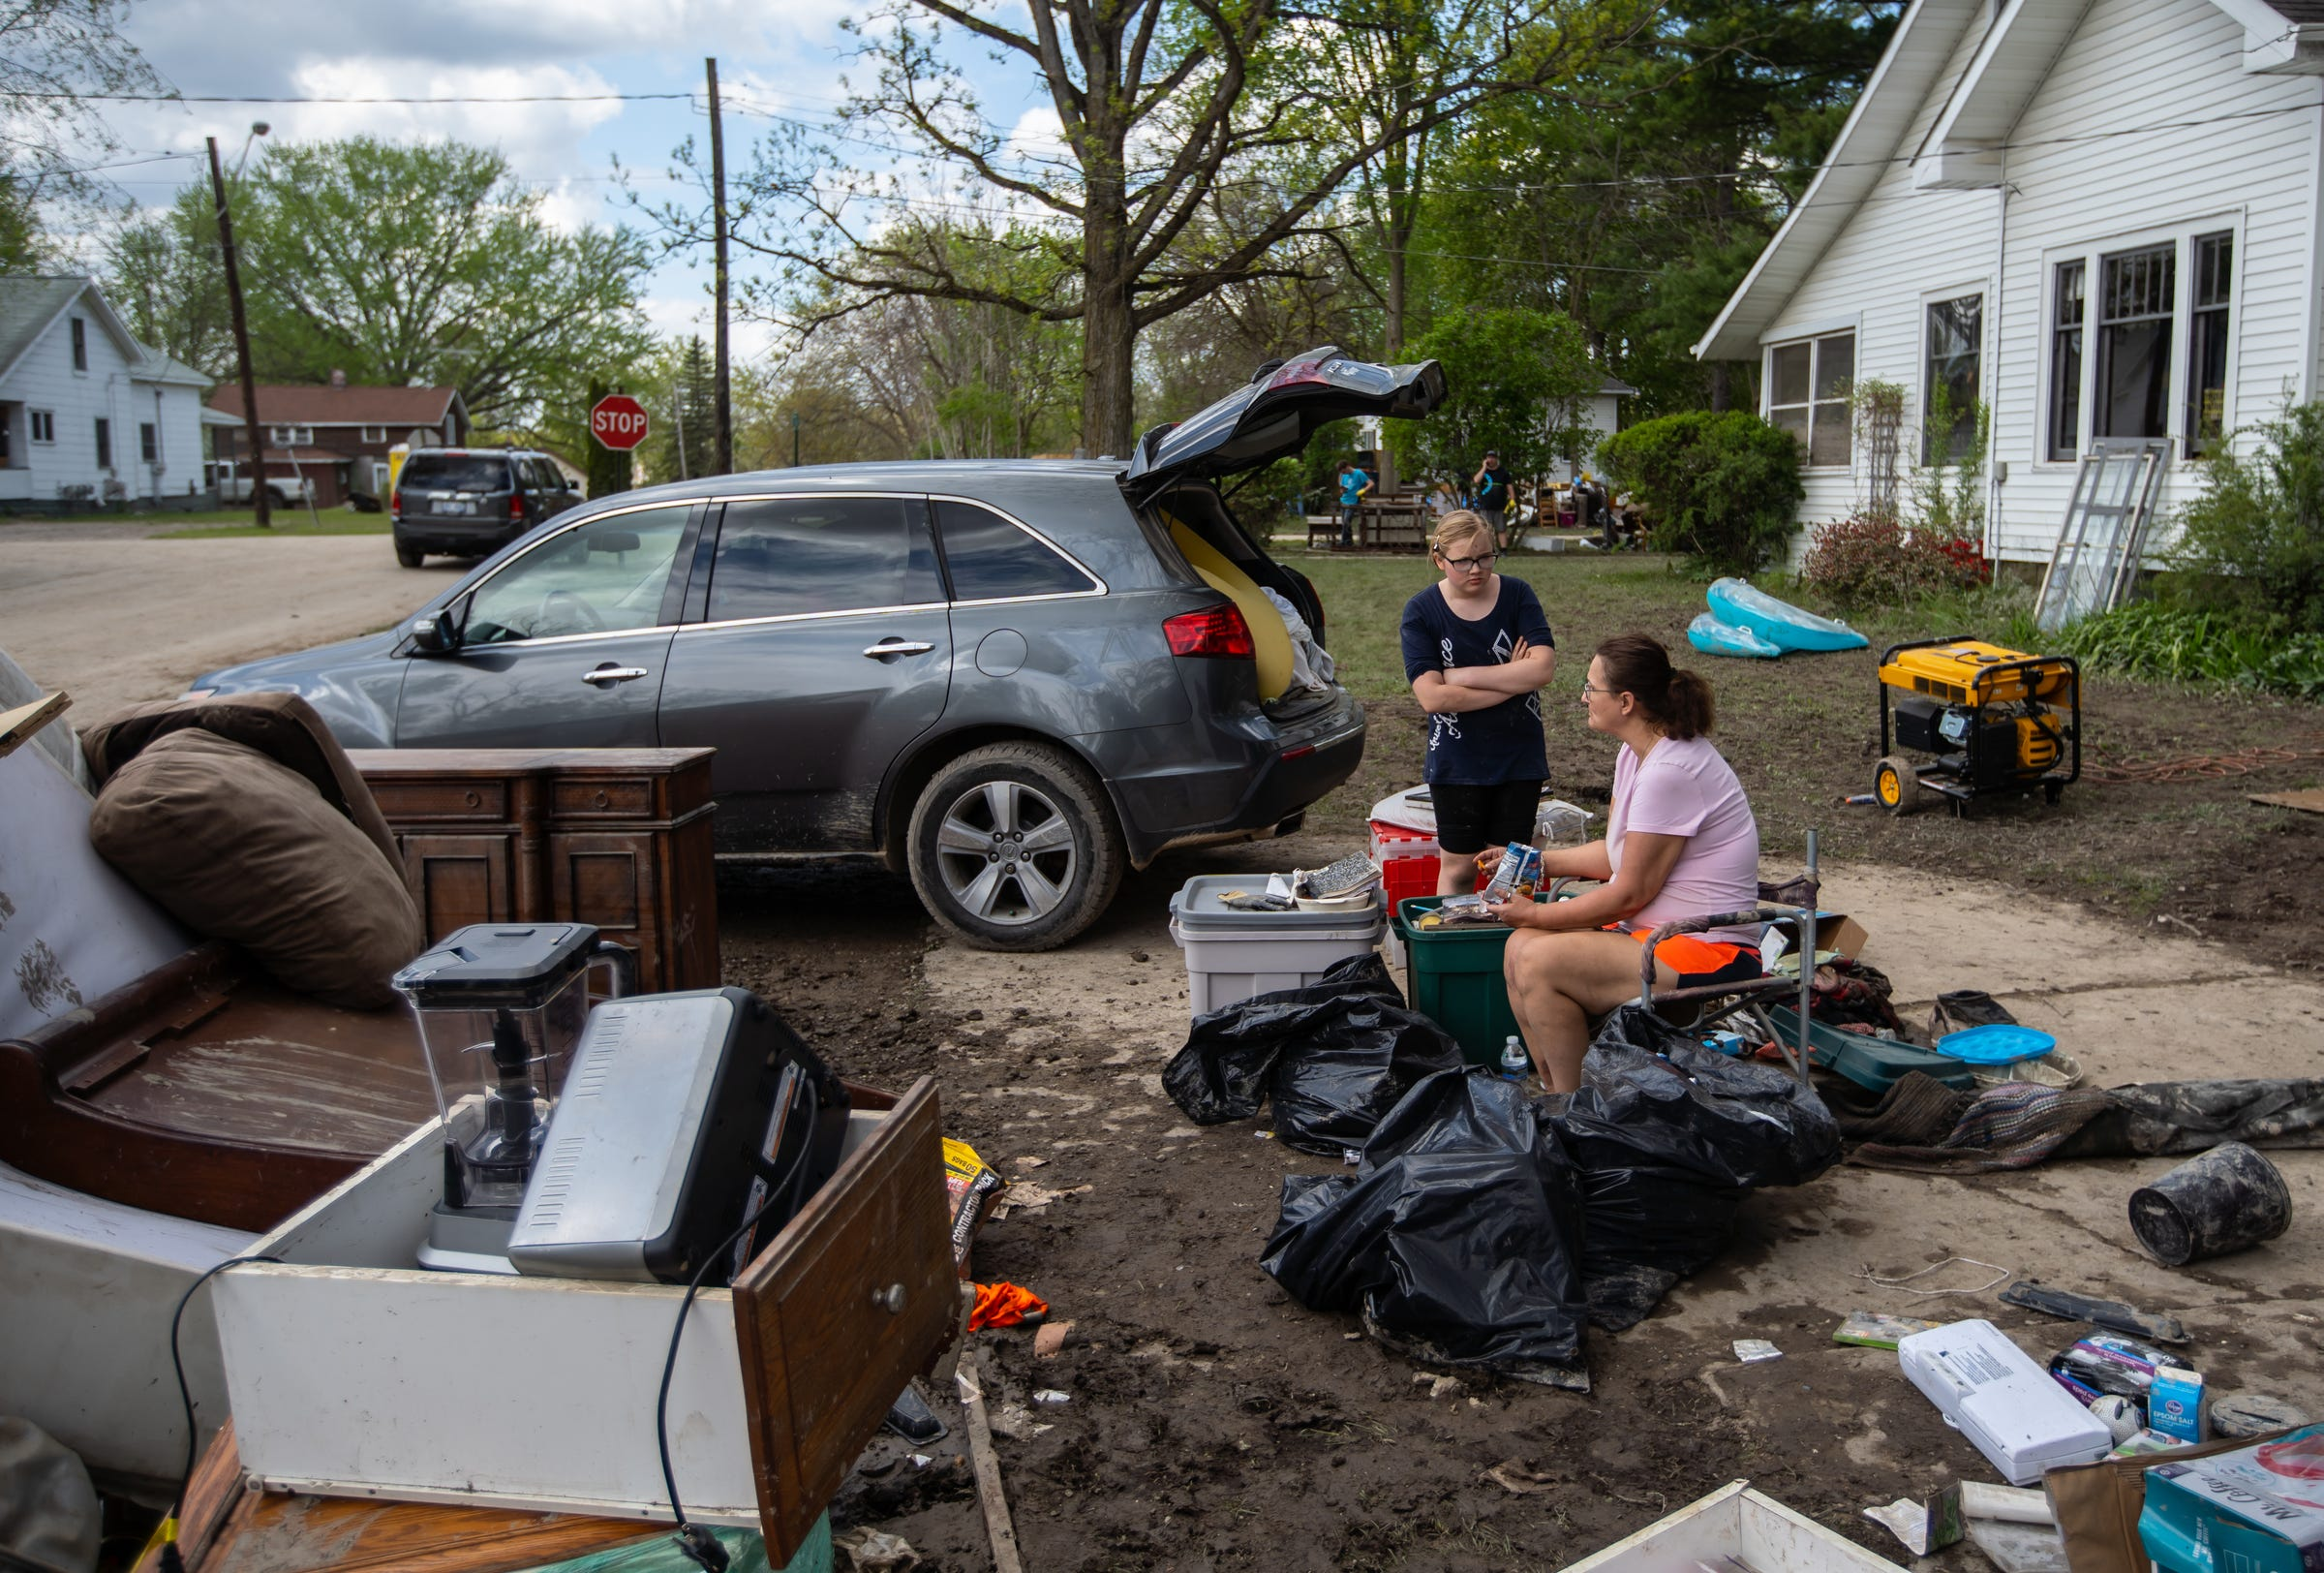 Alexandra Braley (right) and her niece, Skyla Brevis of Beaverton, sit among Braley's damaged belongings in her driveway in Sanford on Friday, May 22, 2020.